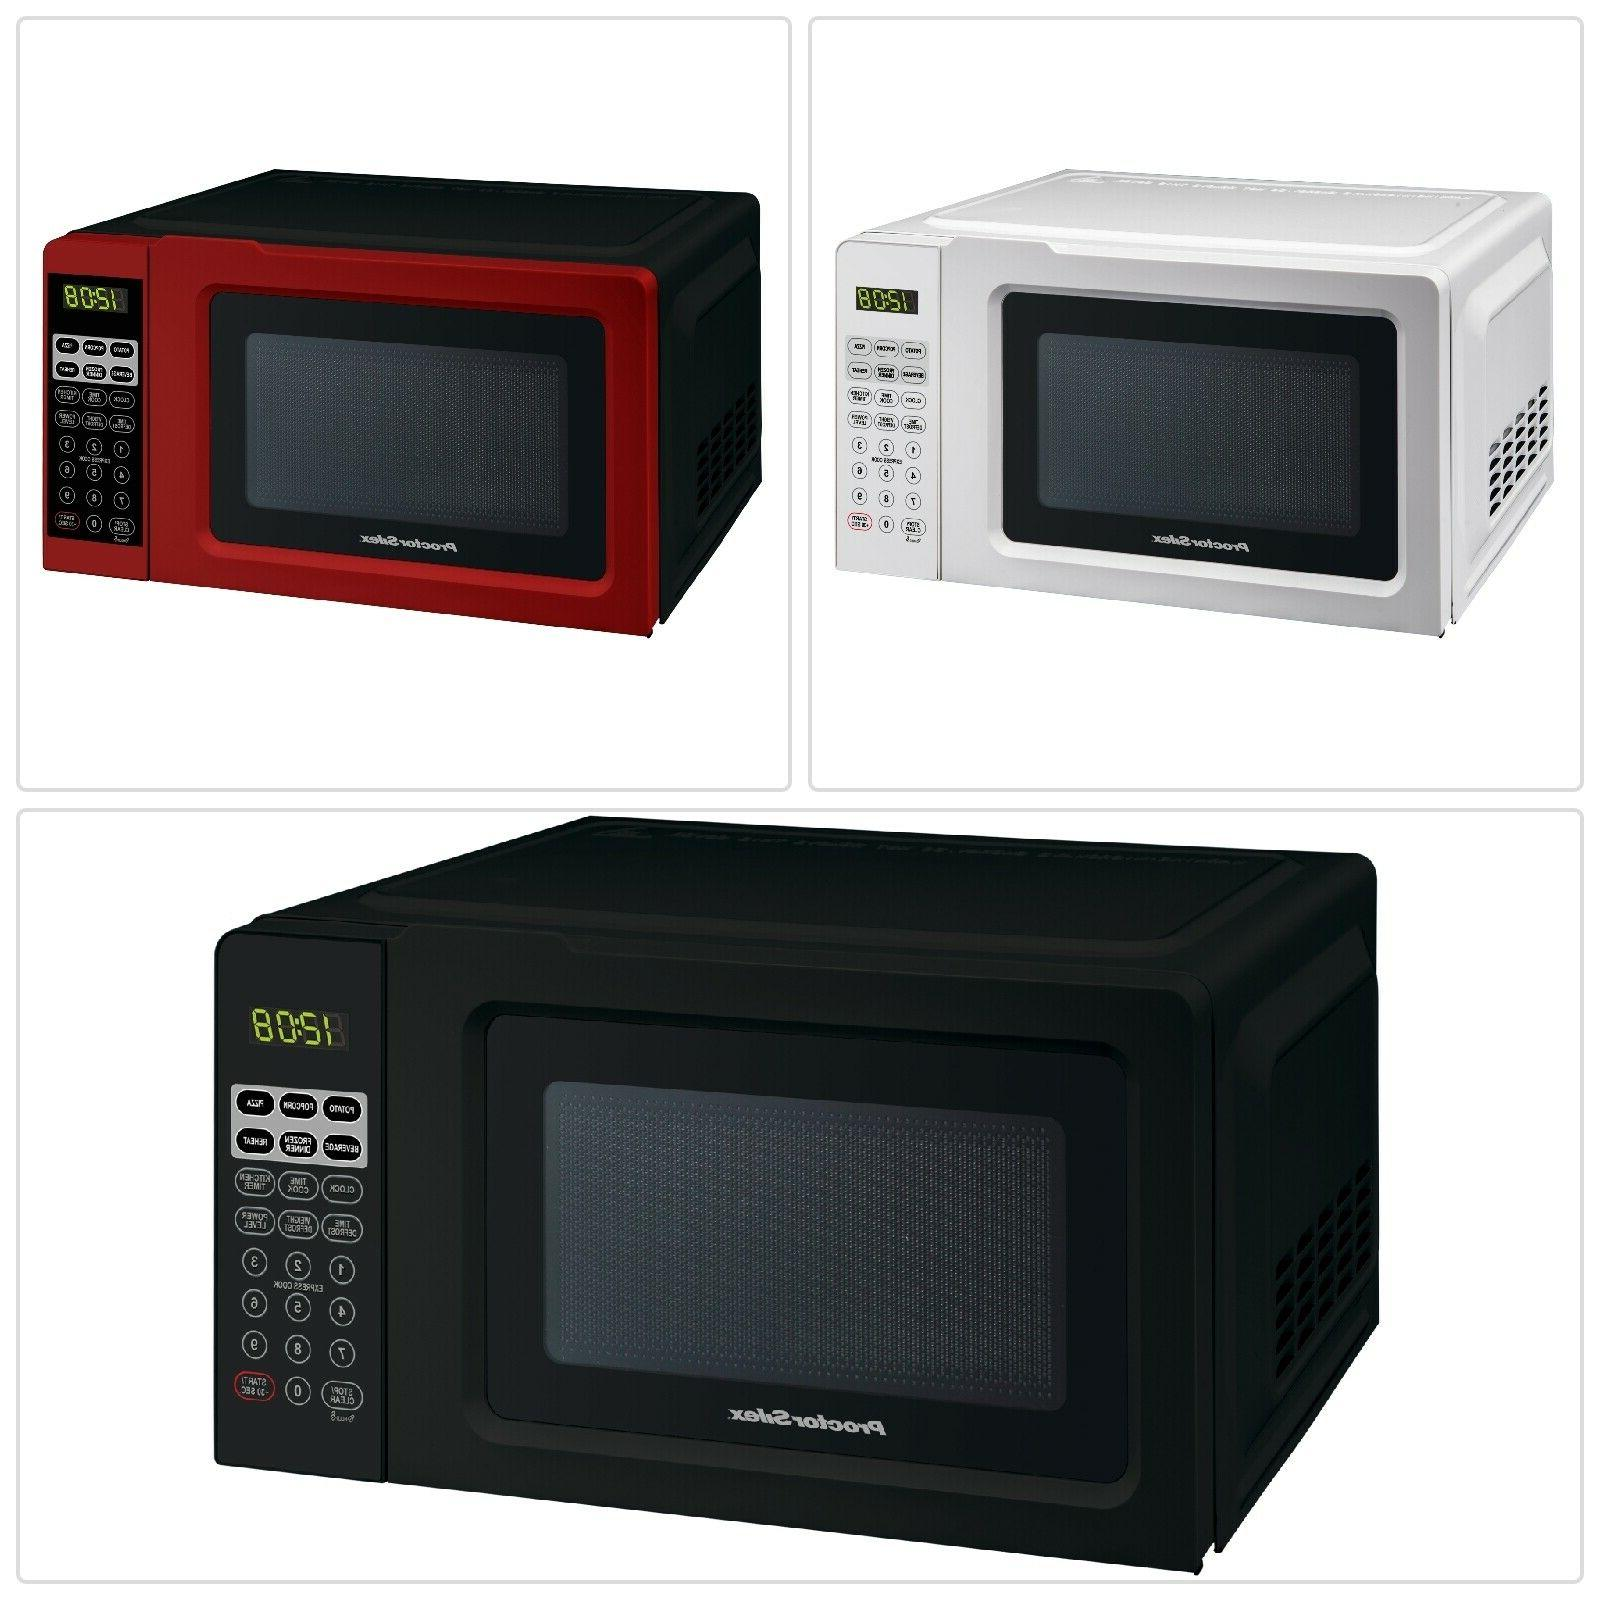 home digital microwave oven small kitchen heavy